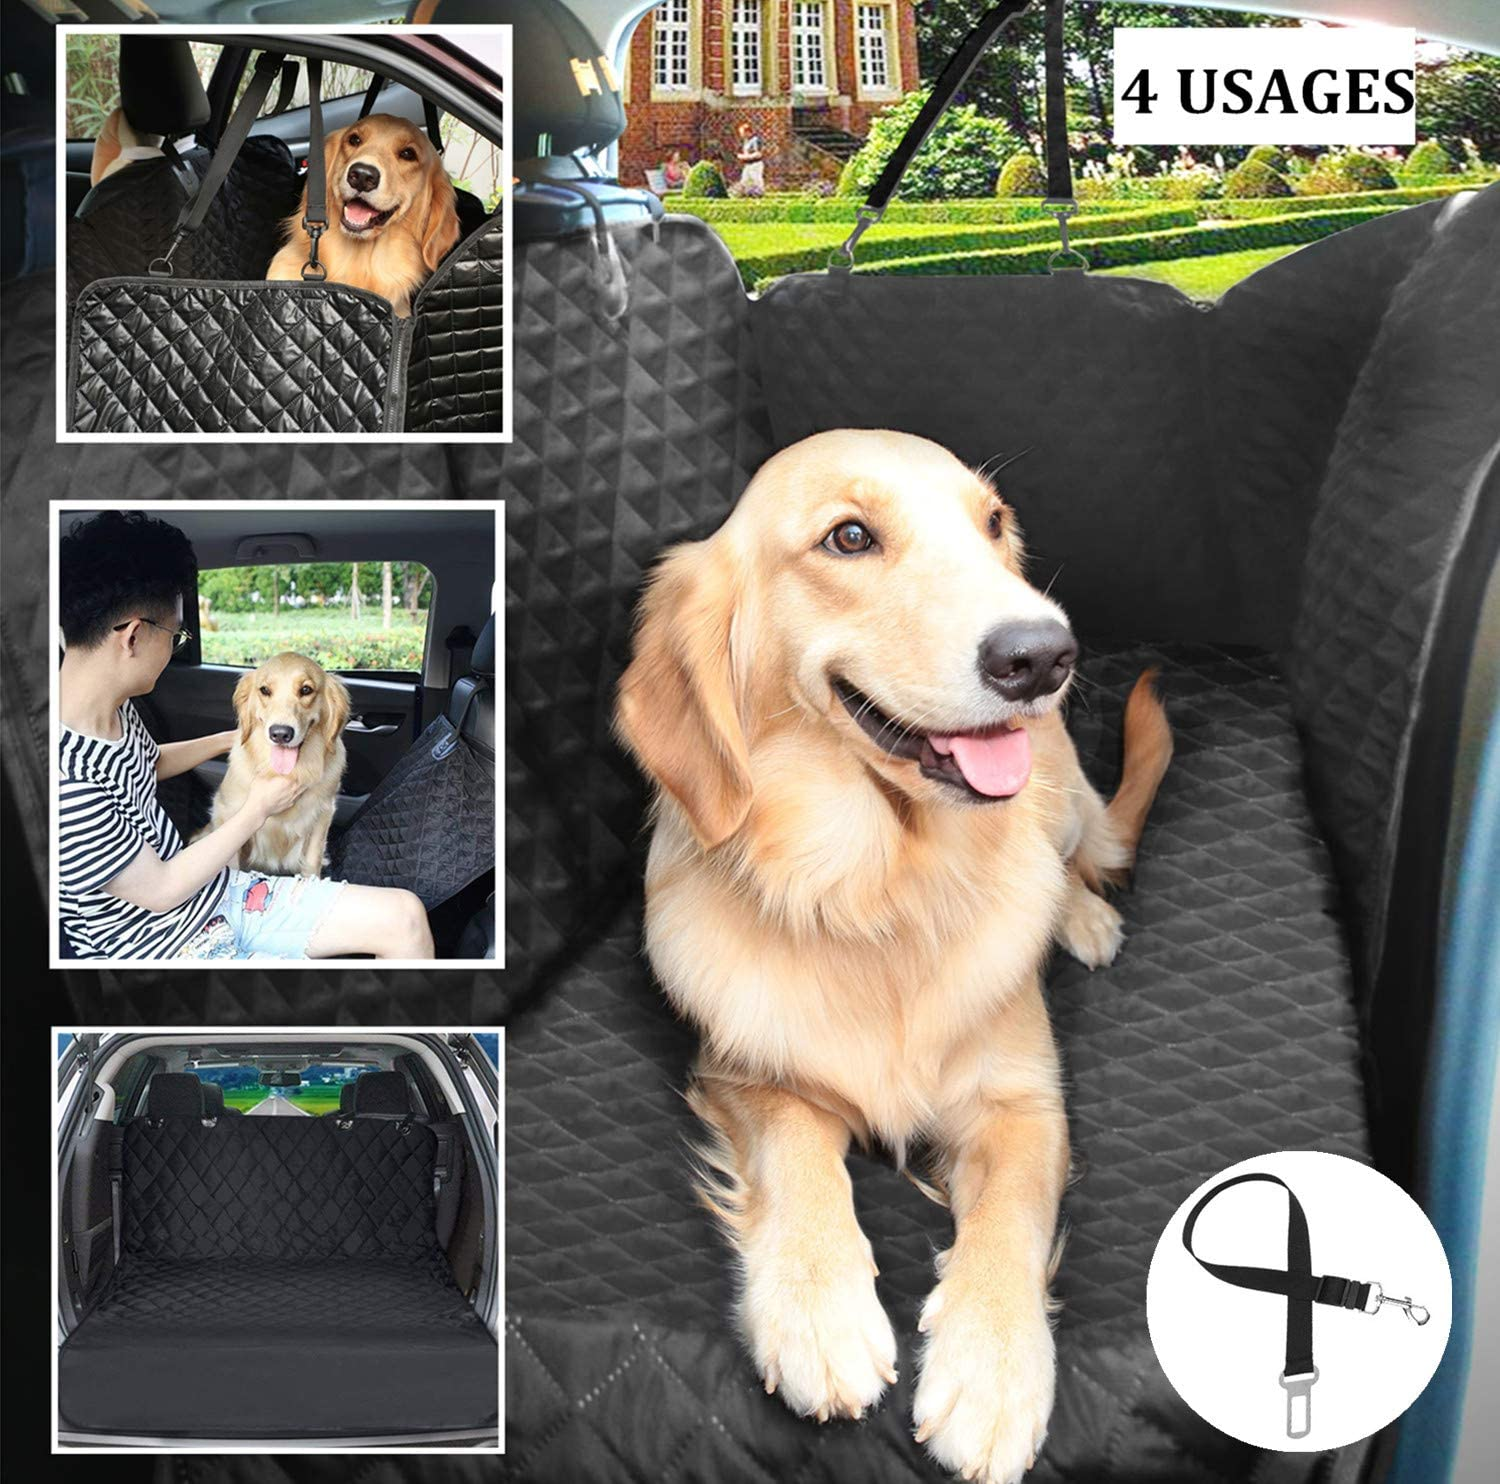 Pecute Dog Seat Cover 100 Waterproof Car Seat Covers for Pets Scratch Proof Back Seat Cover Nonslip Dog Car Hammock, Car Seat Covers for Dogs, Dog Backseat Cover for Cars Trucks SUV